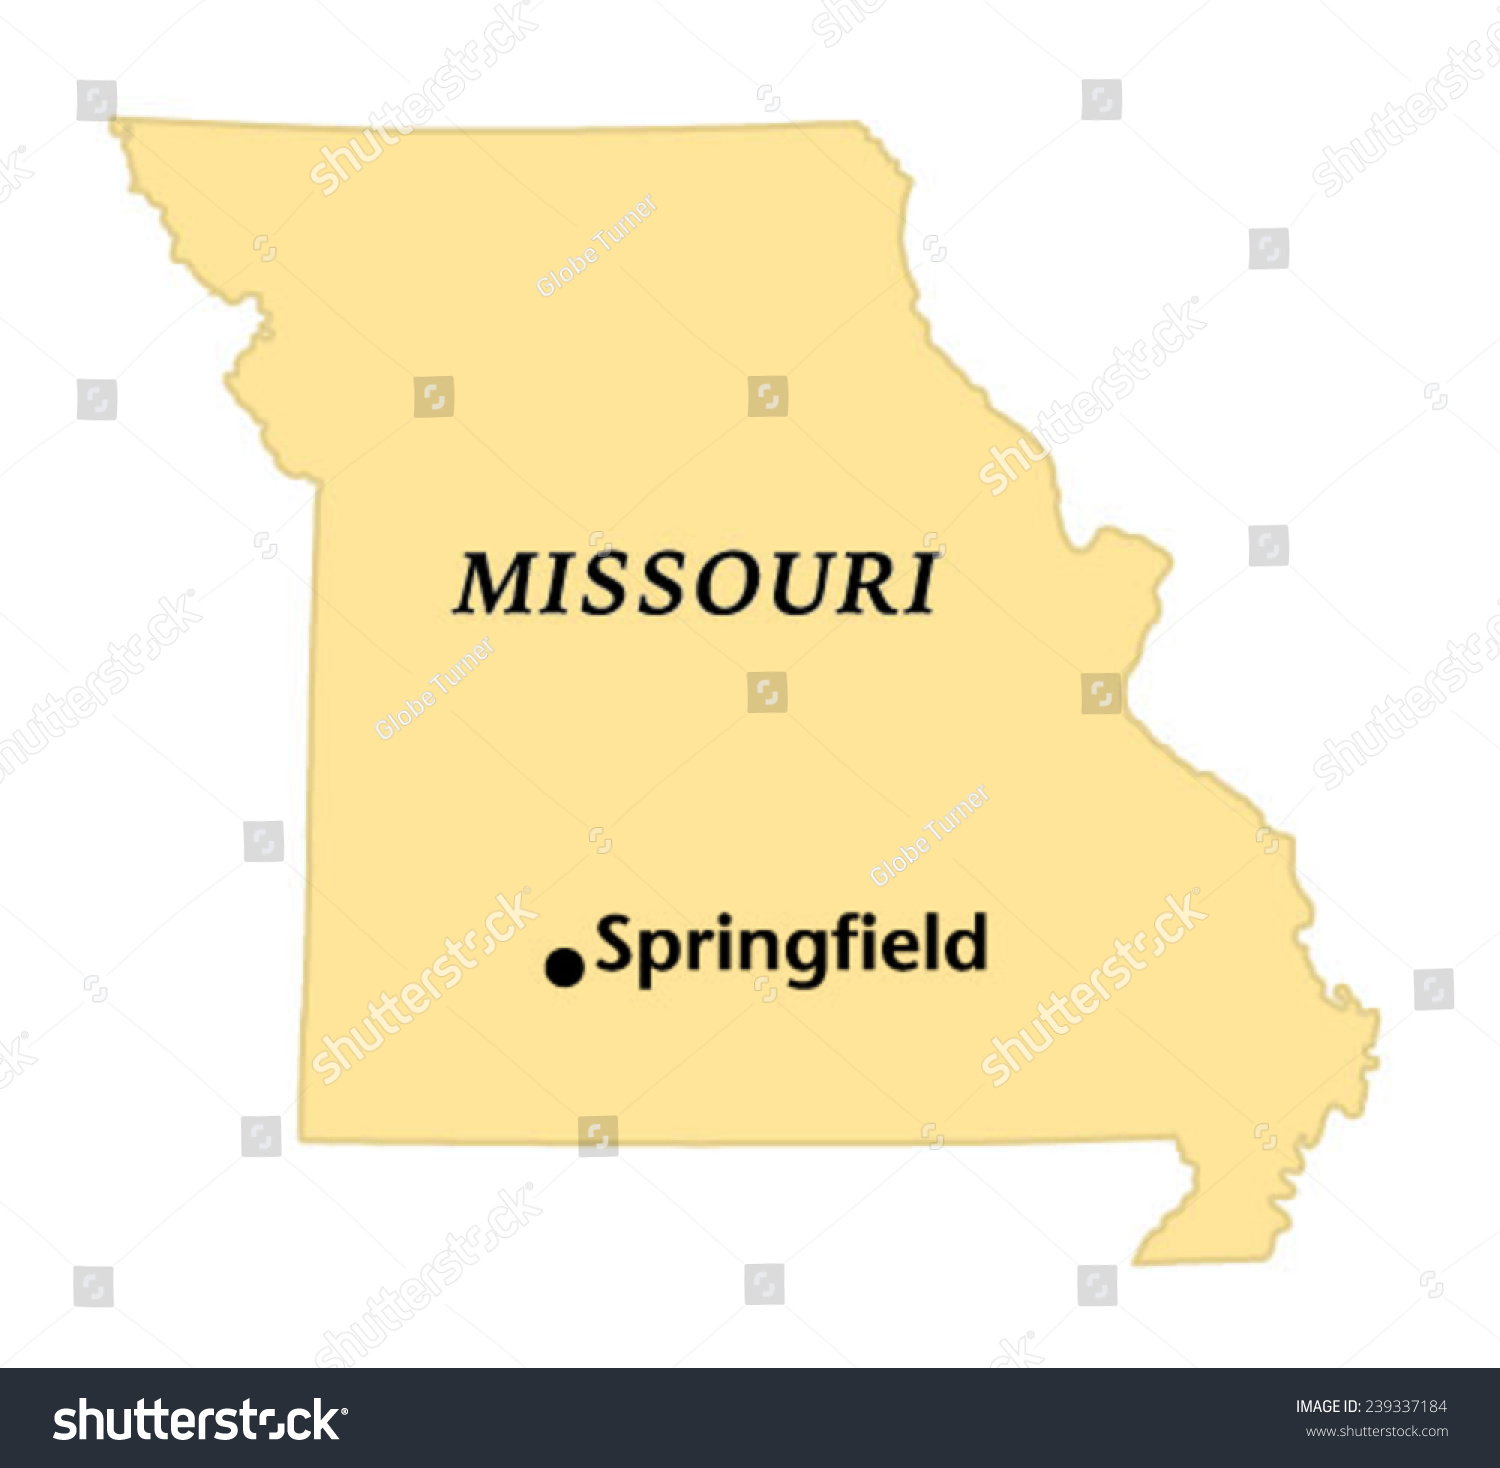 Springfield Mo Map Map Quist Lmu Map - Springfield mo map